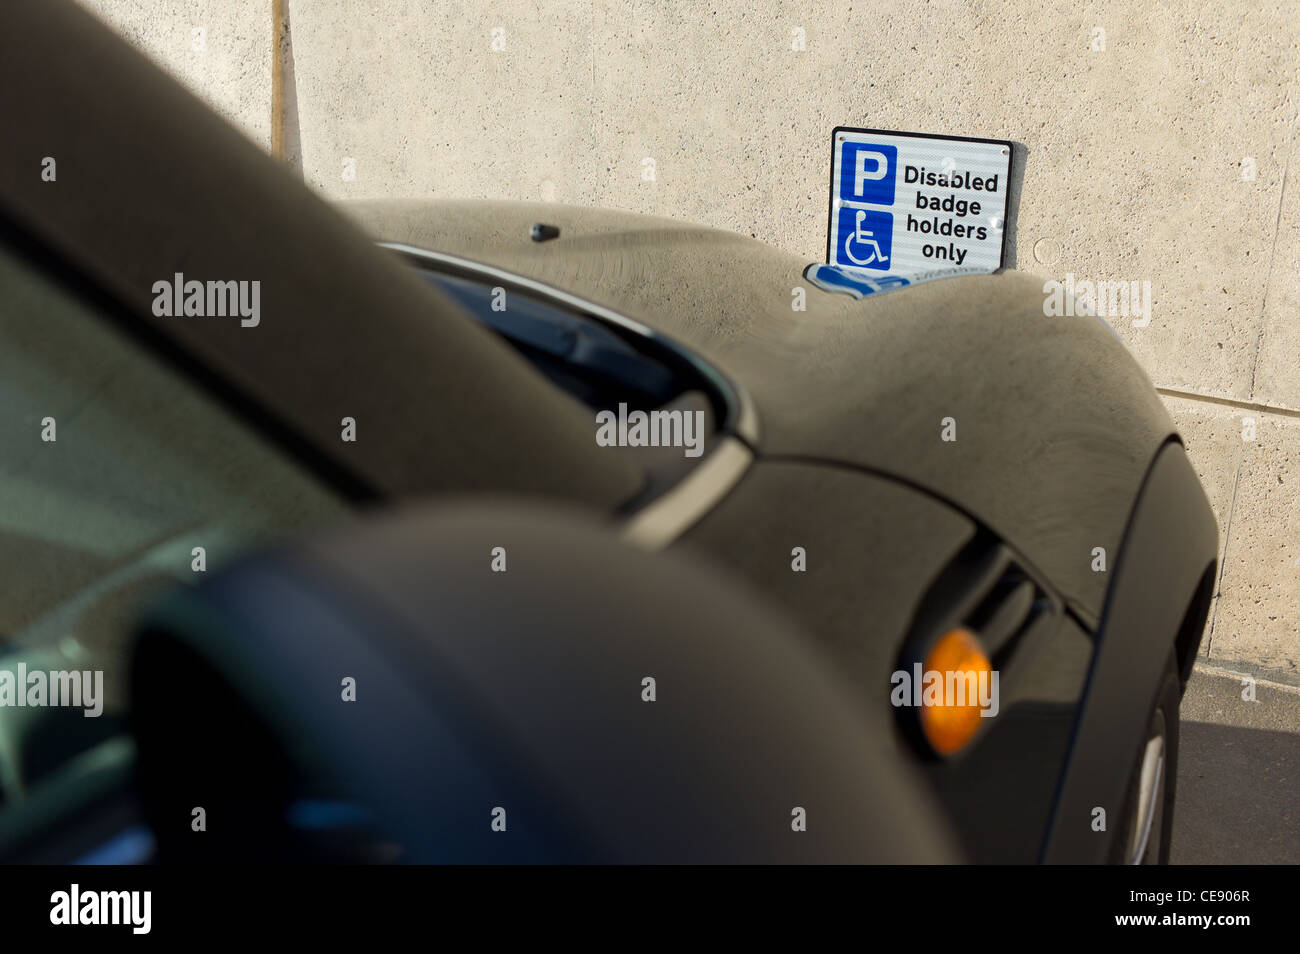 Disabled Blue Badge Holders parking sign at the Spa Bridlington, seaside holiday resort, UK - Stock Image